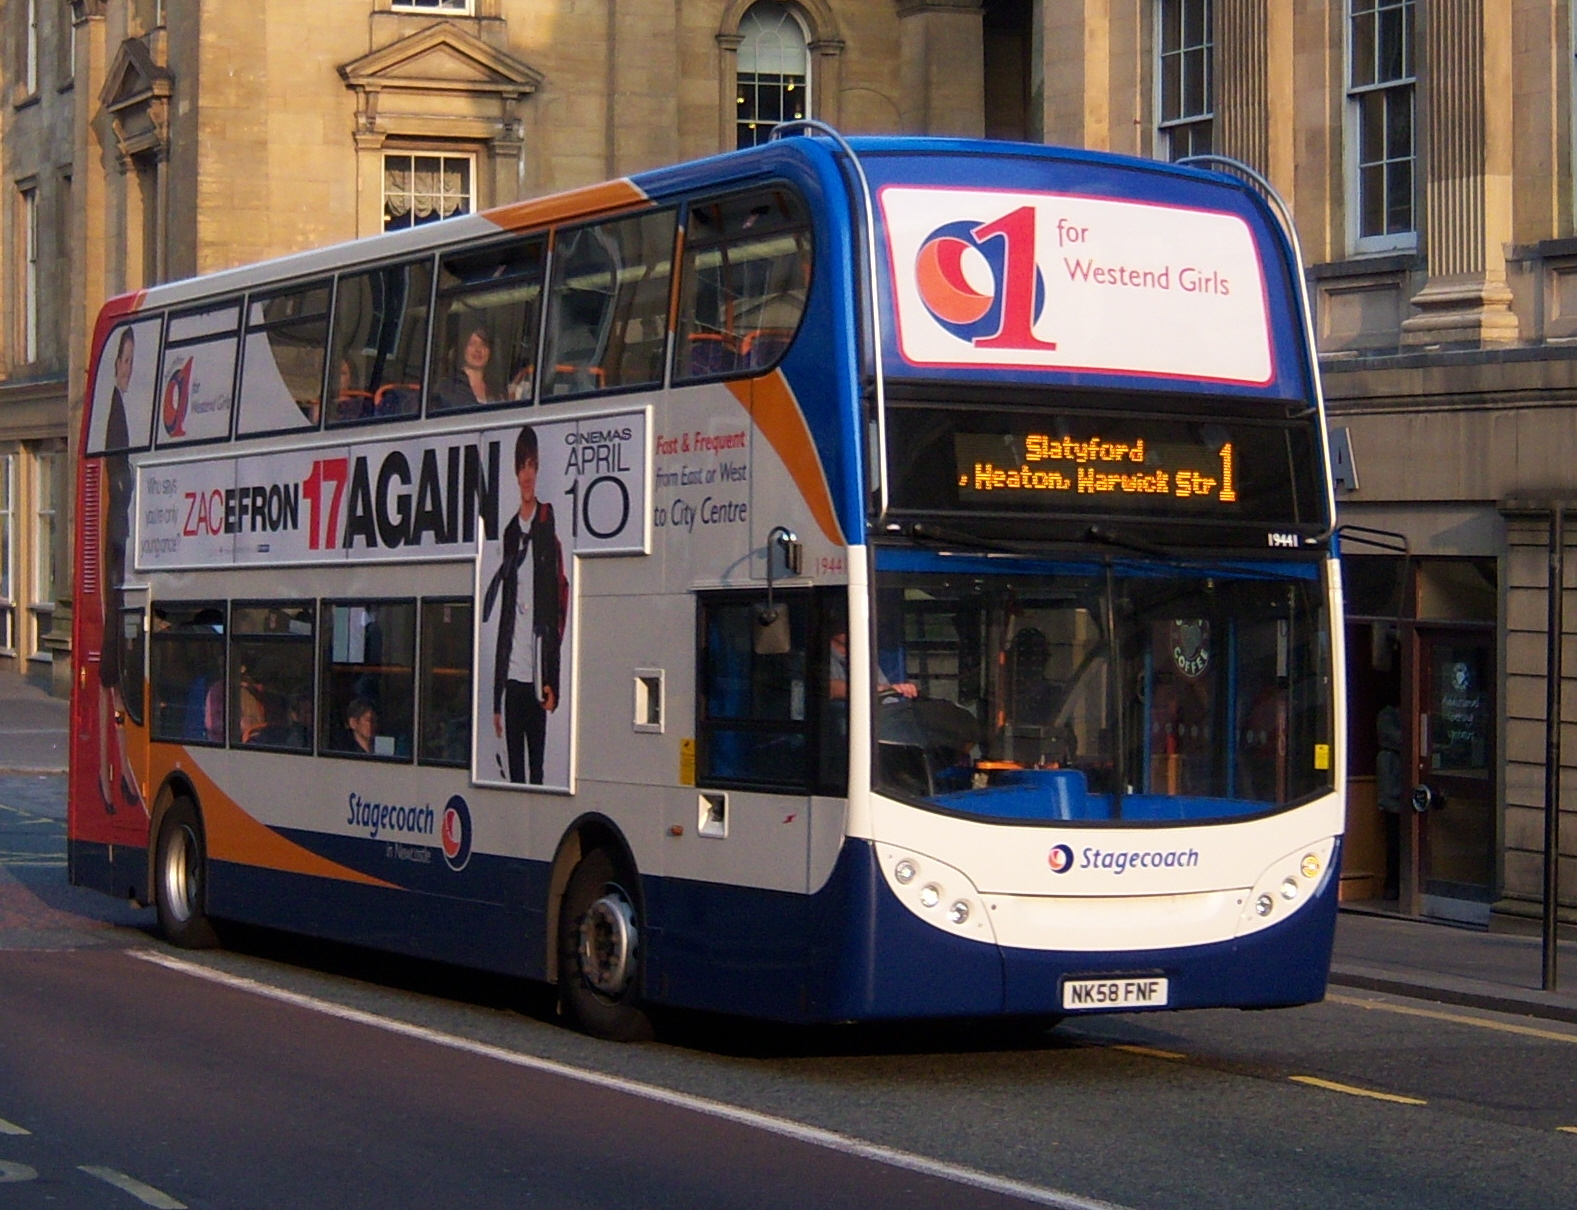 stagecoach in newcastle - wikipedia